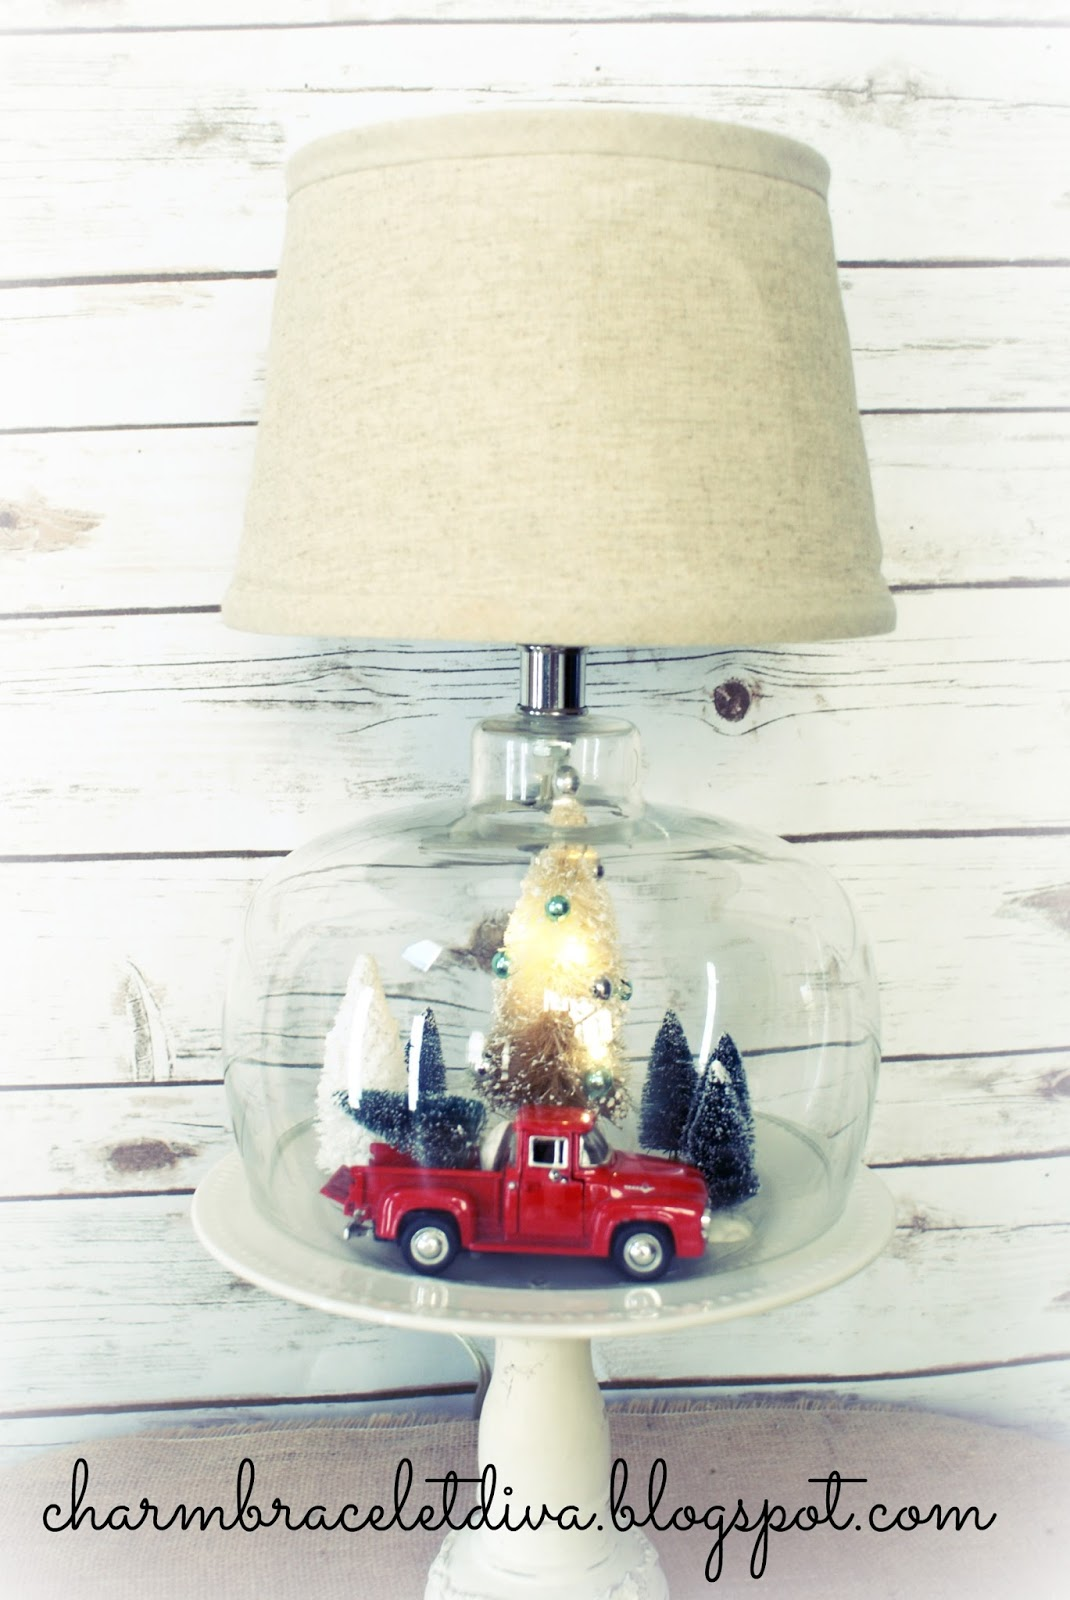 Our Hopeful Home: Thrift Store Lamp Transformed into Vintage ...